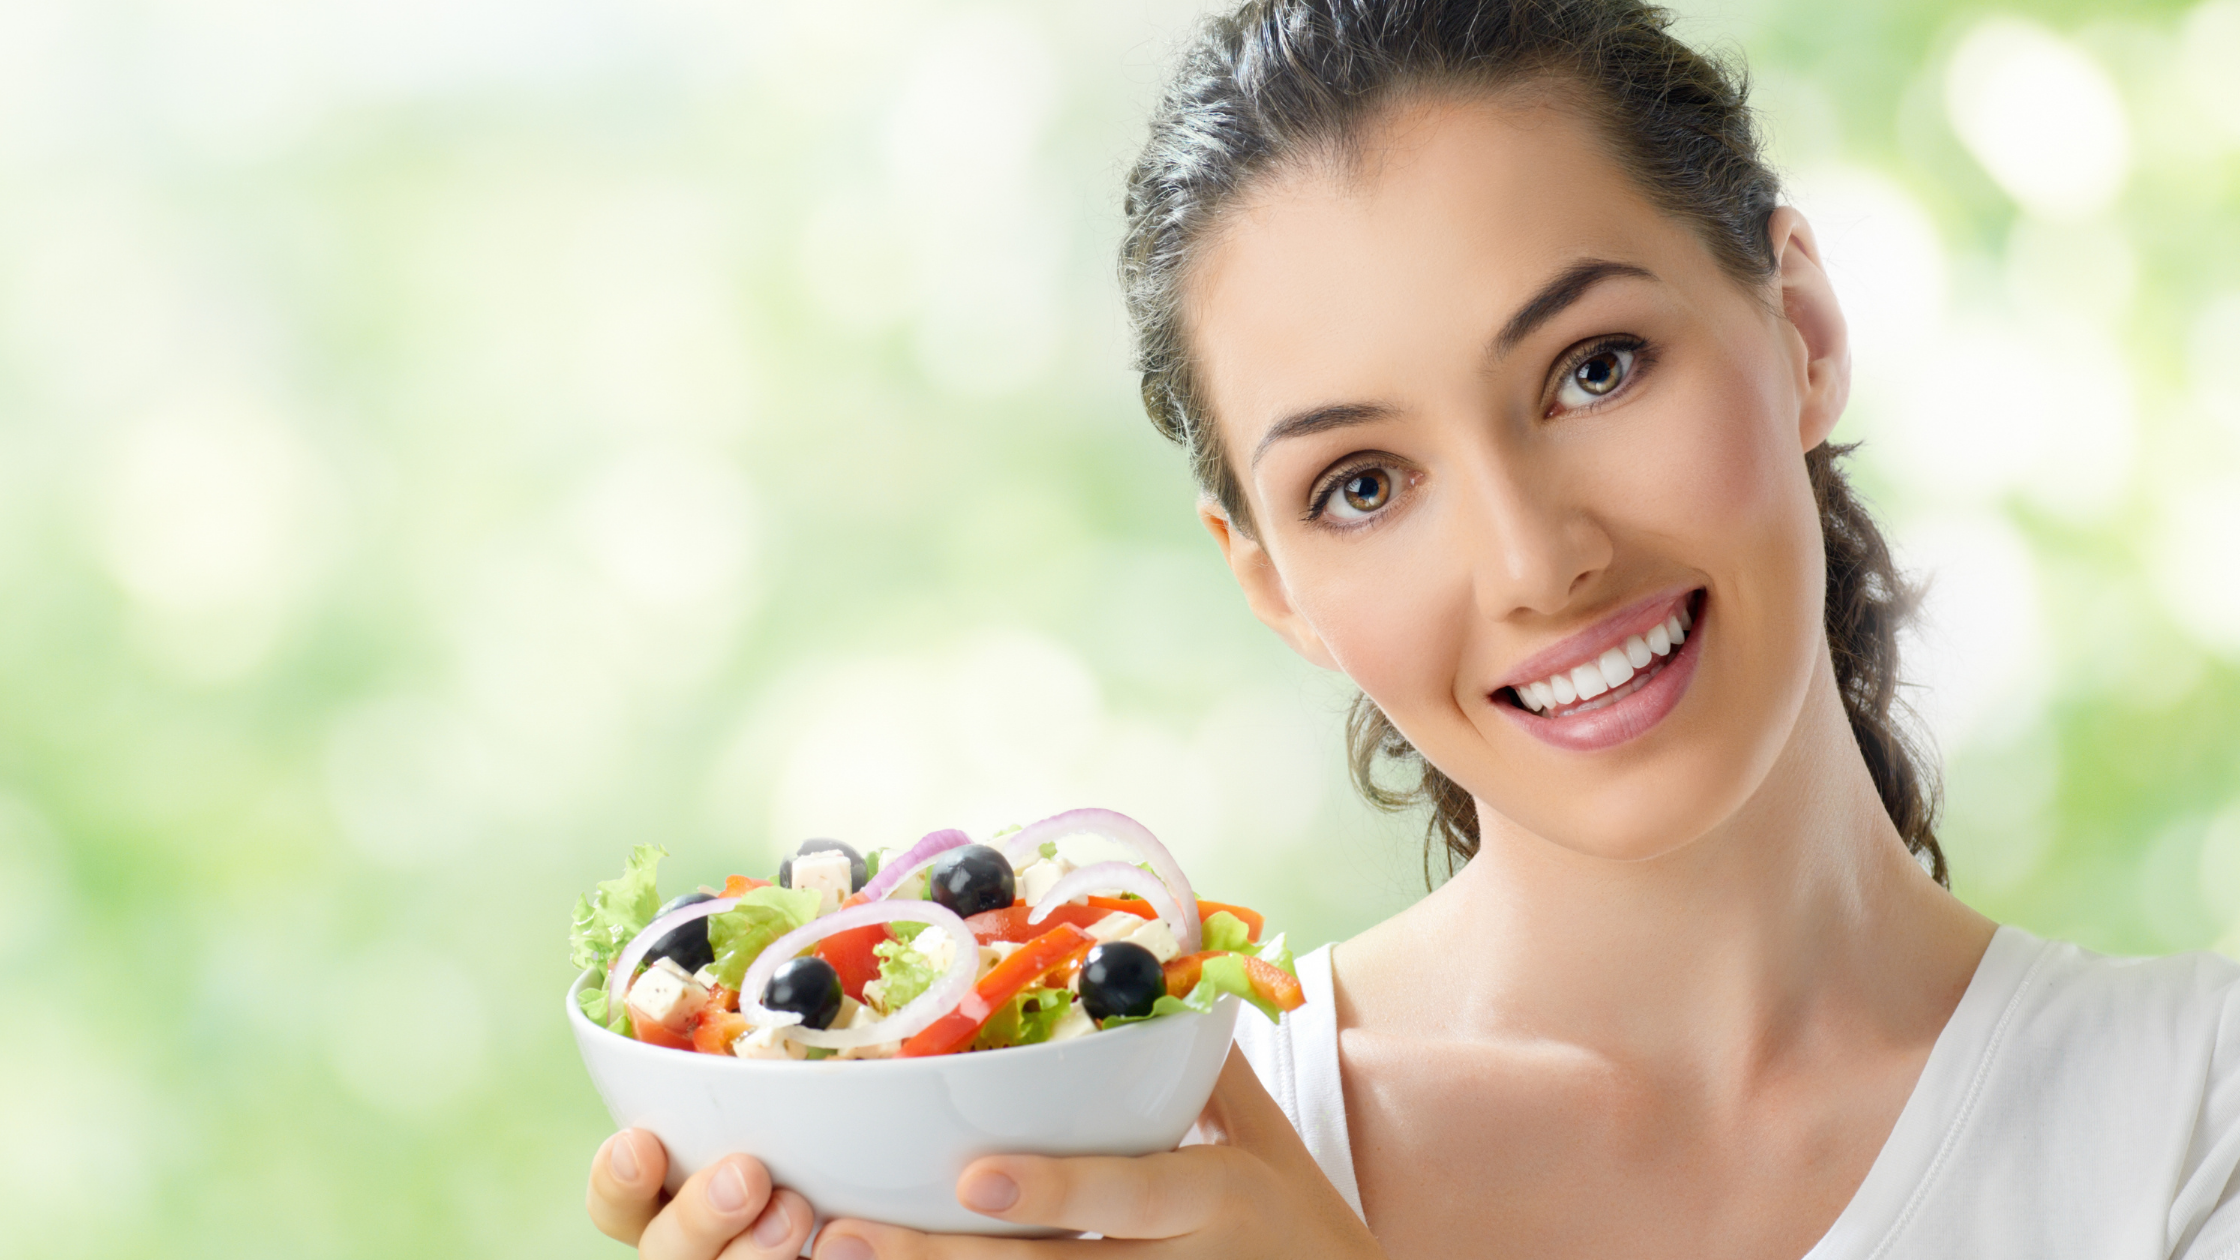 Women eat healthy food